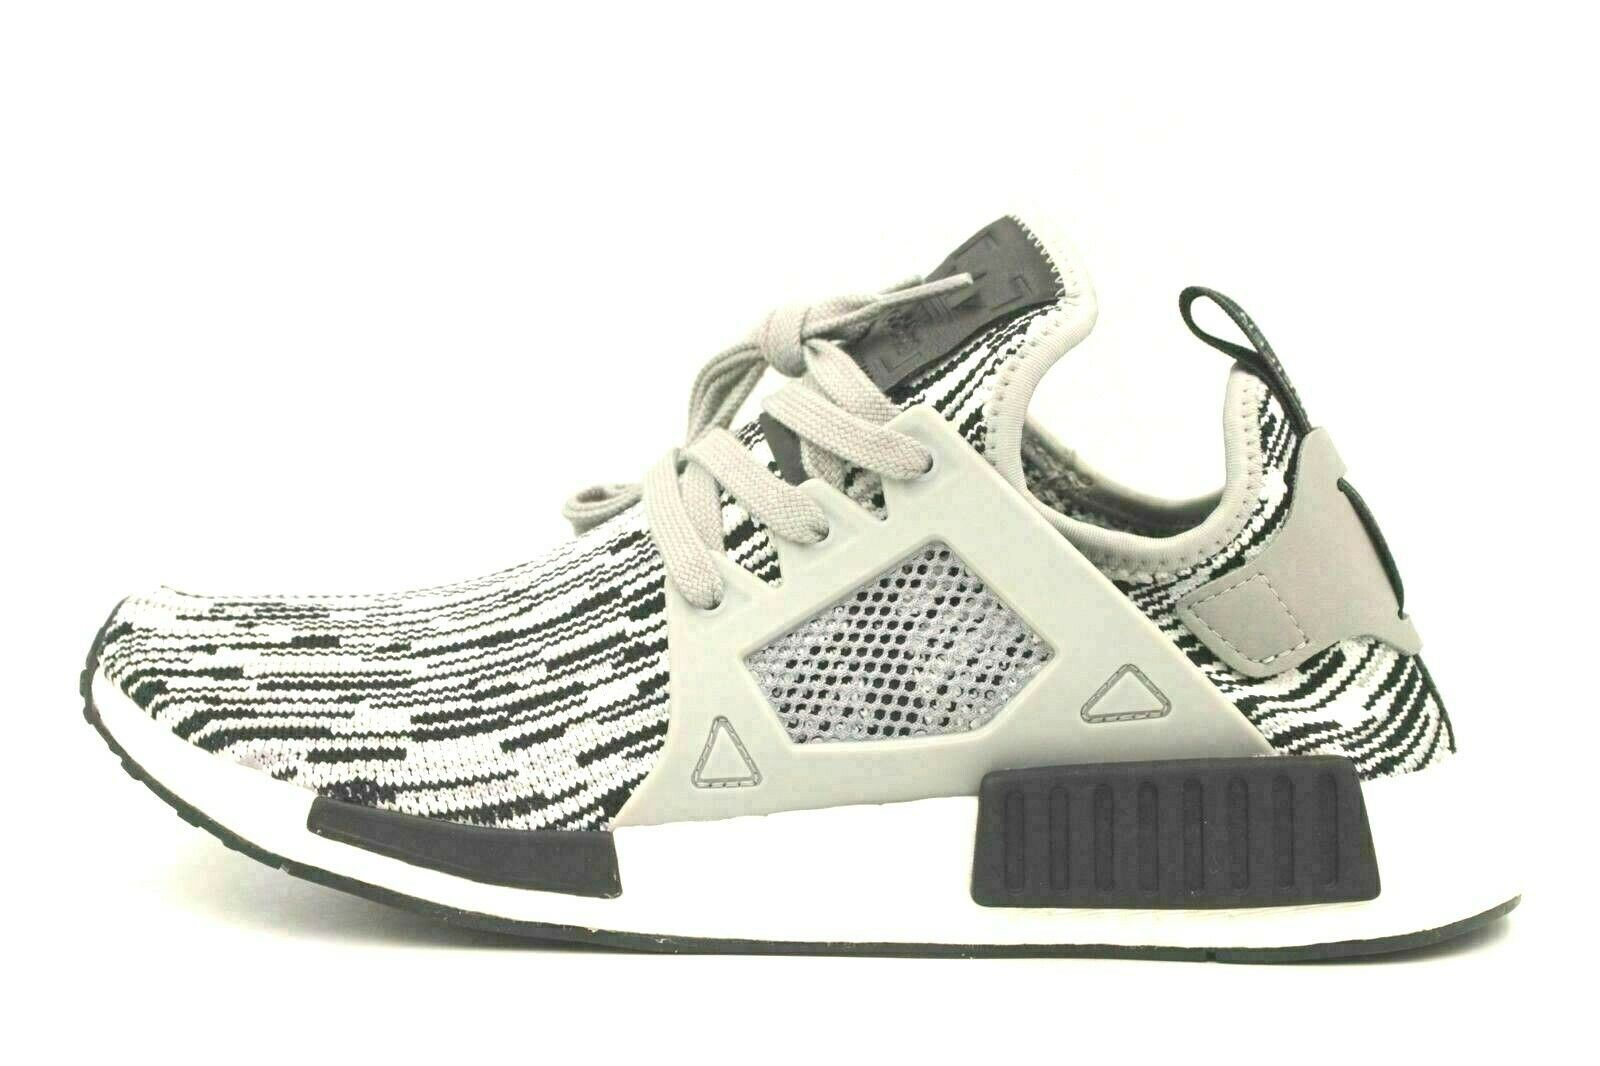 a140f63b4358a ADIDAS NMD XR1 PK Men Fashion Sneakers Size 9 Black Gray White BY1910